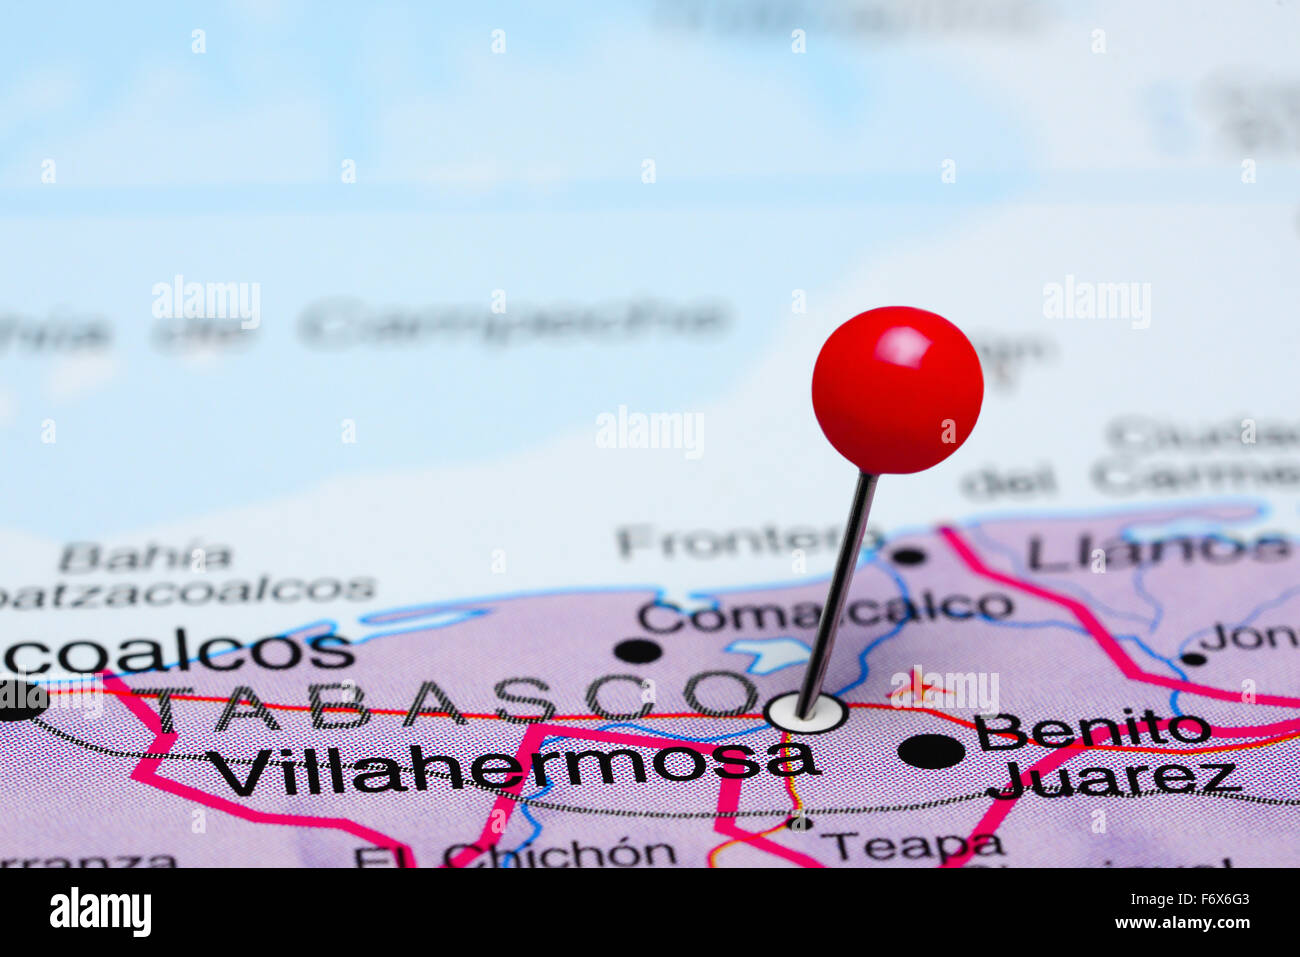 Villahermosa Pinned On A Map Of Mexico Stock Photo 90315683 Alamy